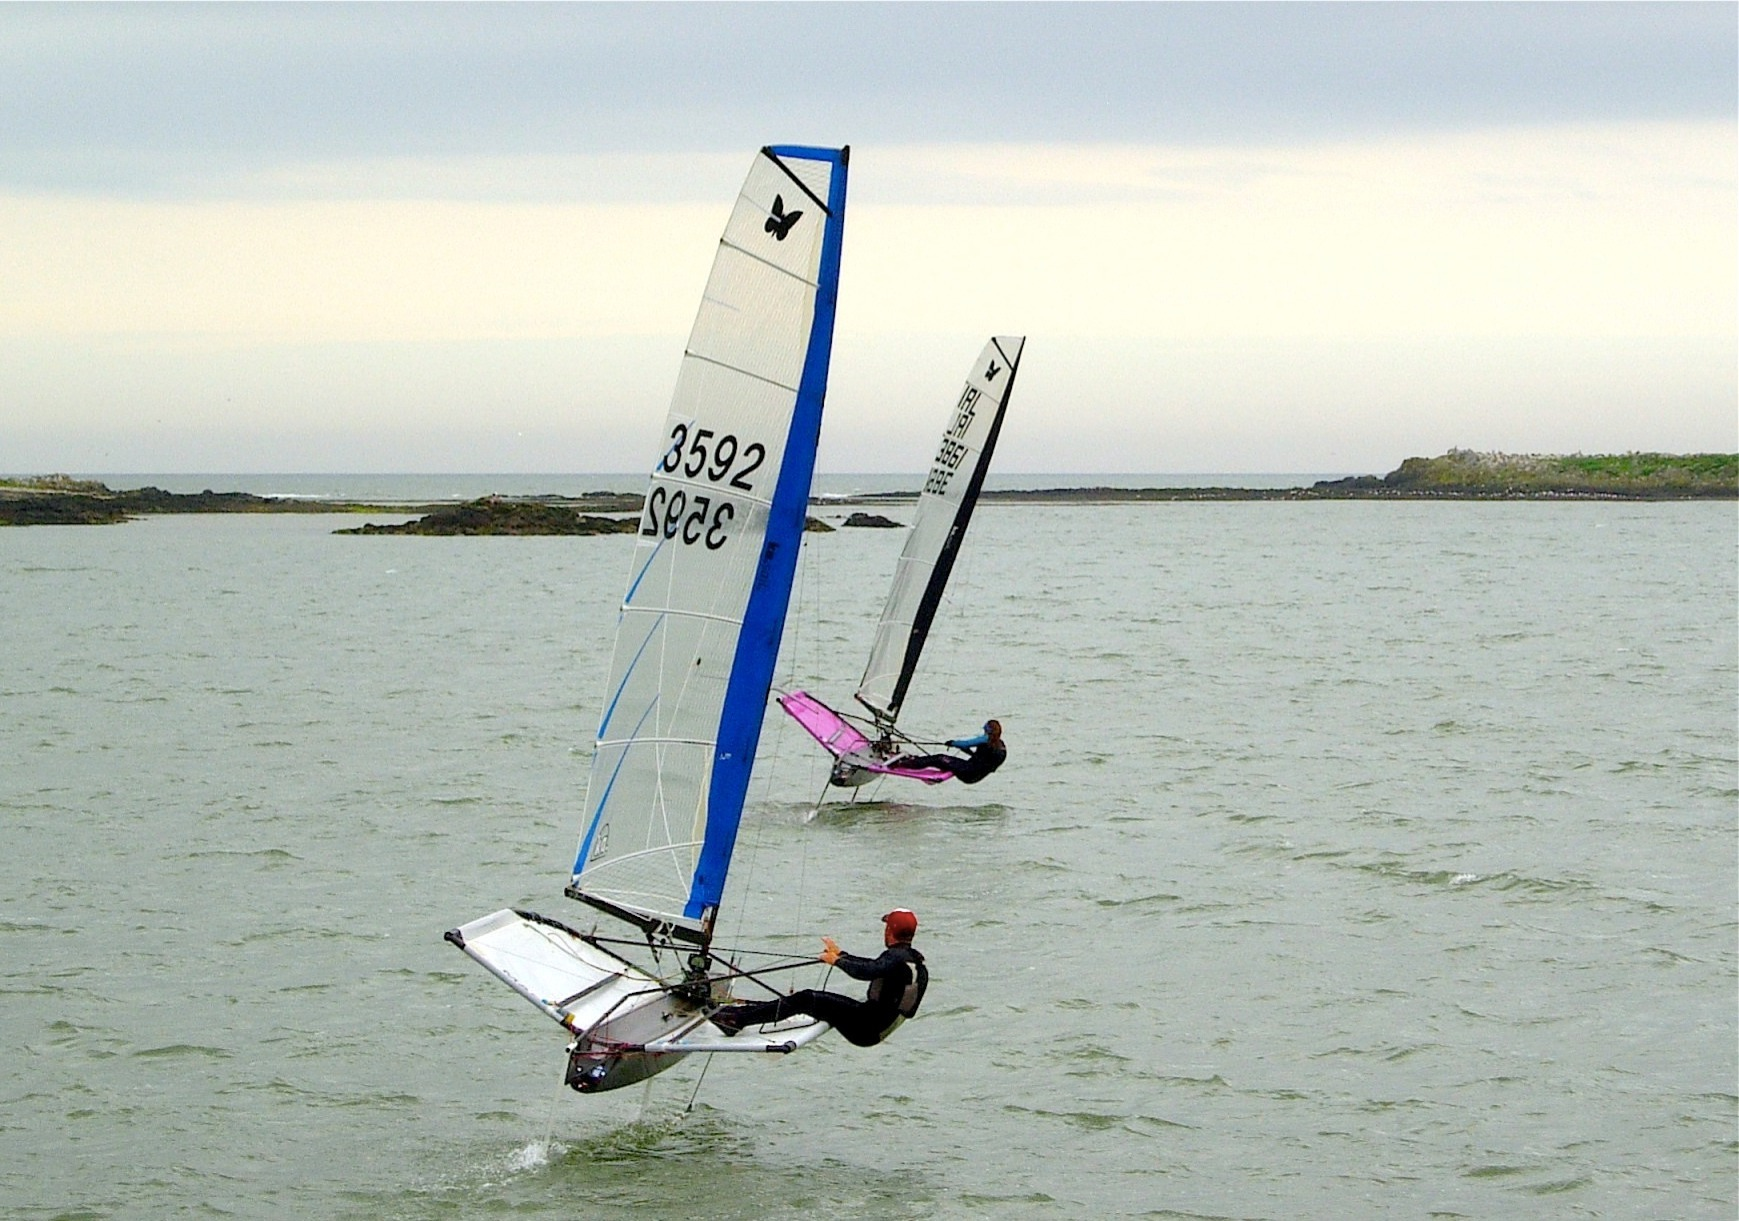 NYC sailors Rory Fitzpatrick (3592) and Annalise Murphy race towards the Thulla Rocks